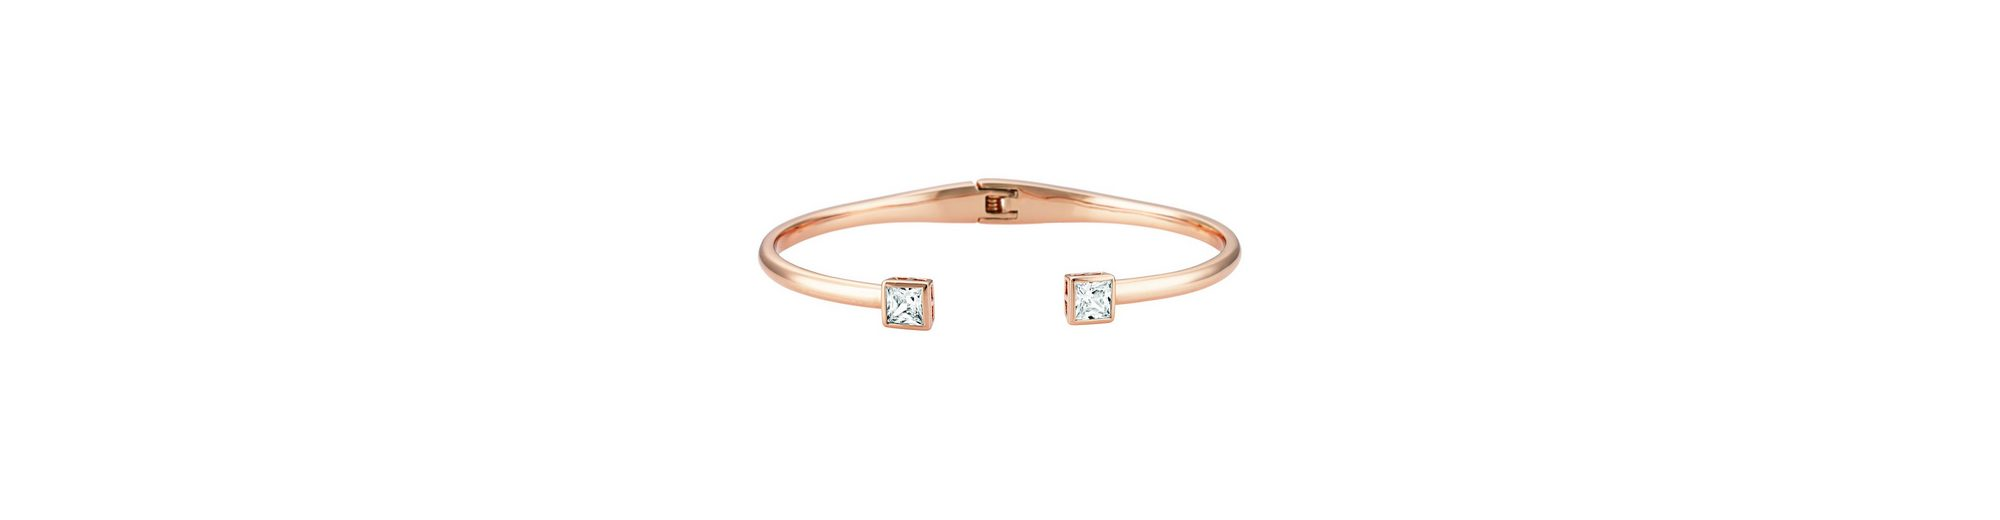 Buckley London Armschmuck »Messing rosévergoldet mit Zirkonia«